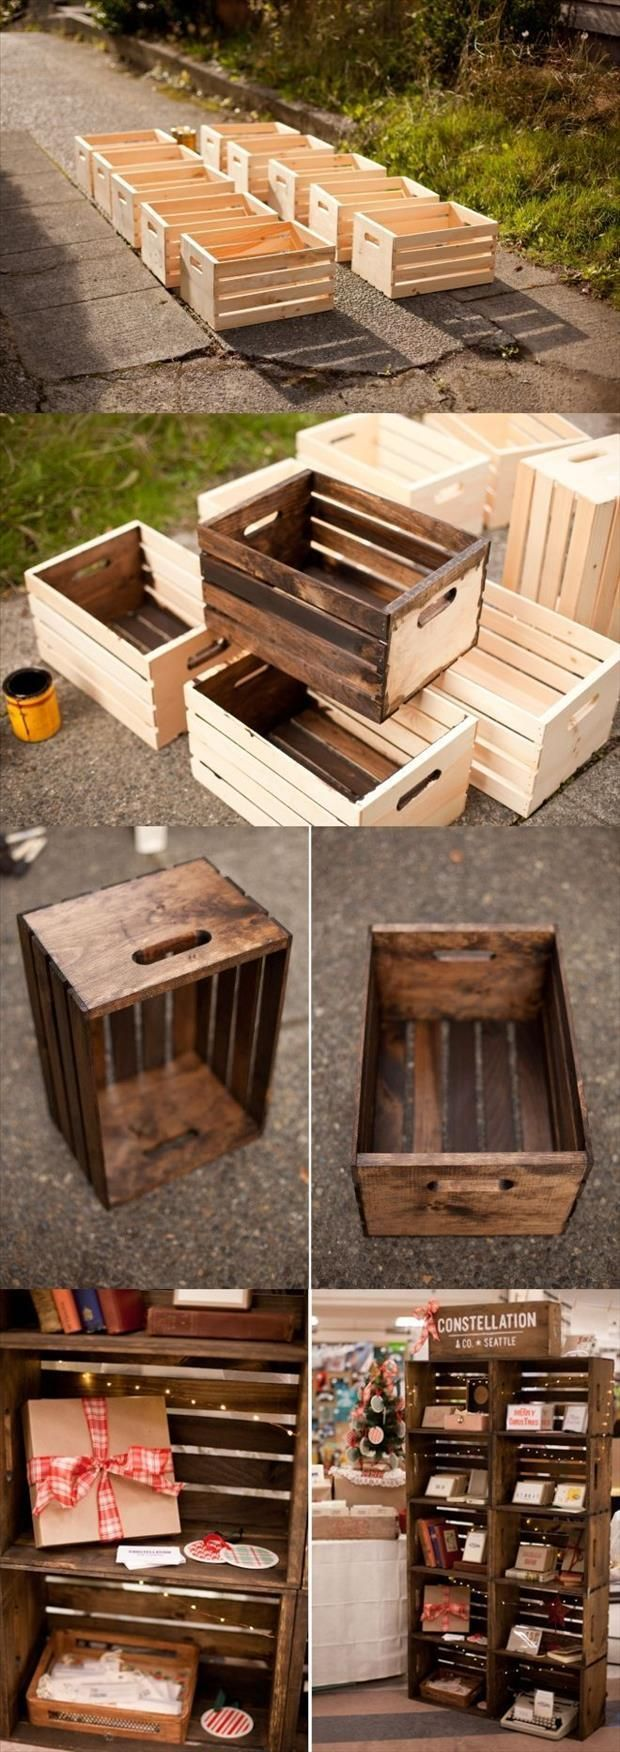 29 Ways to Decorate With Wooden Crates usefuldiyprojects… decor ideas (8)  – Kitchen & Household